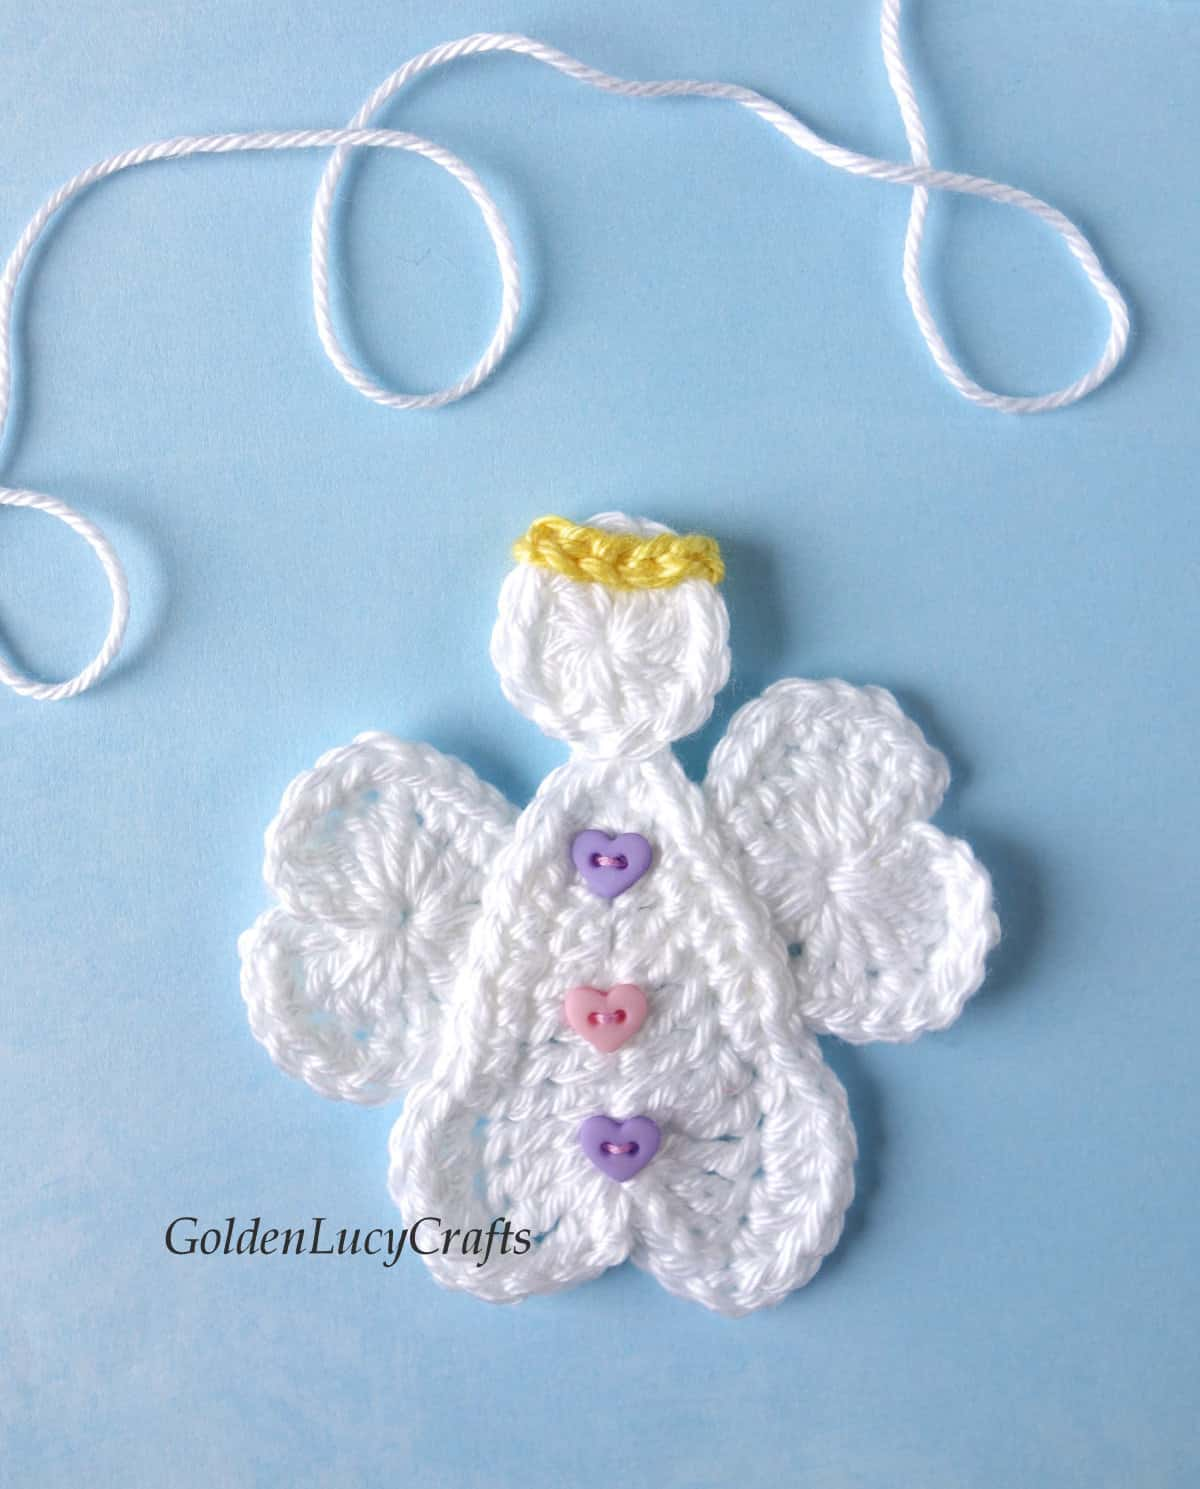 Crochet Angel applique made from hearts.